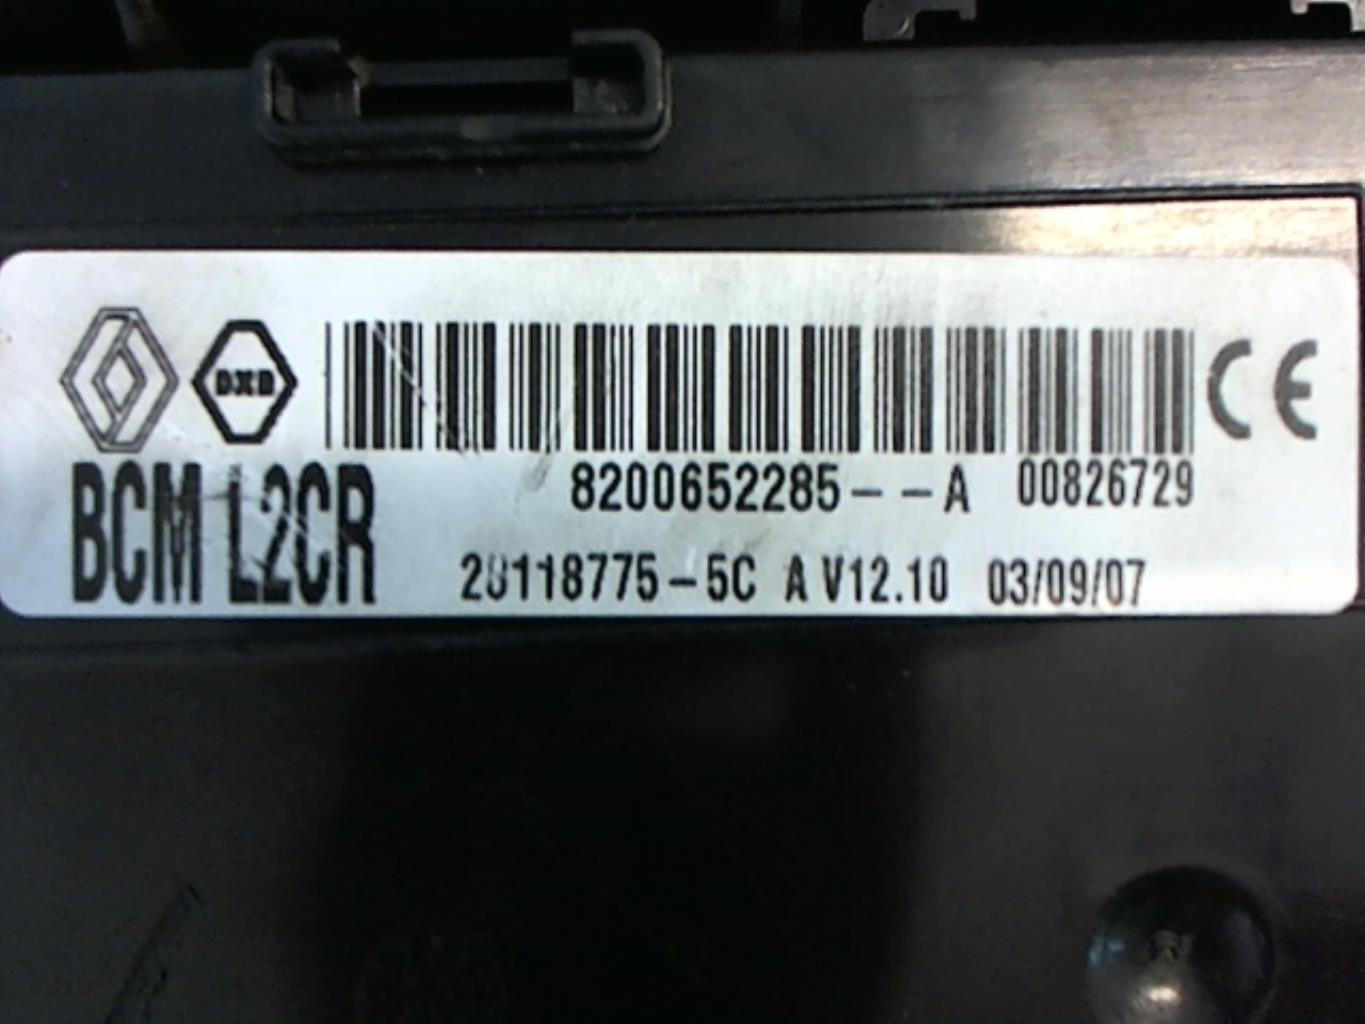 Image Boitier UCH - RENAULT CLIO 3